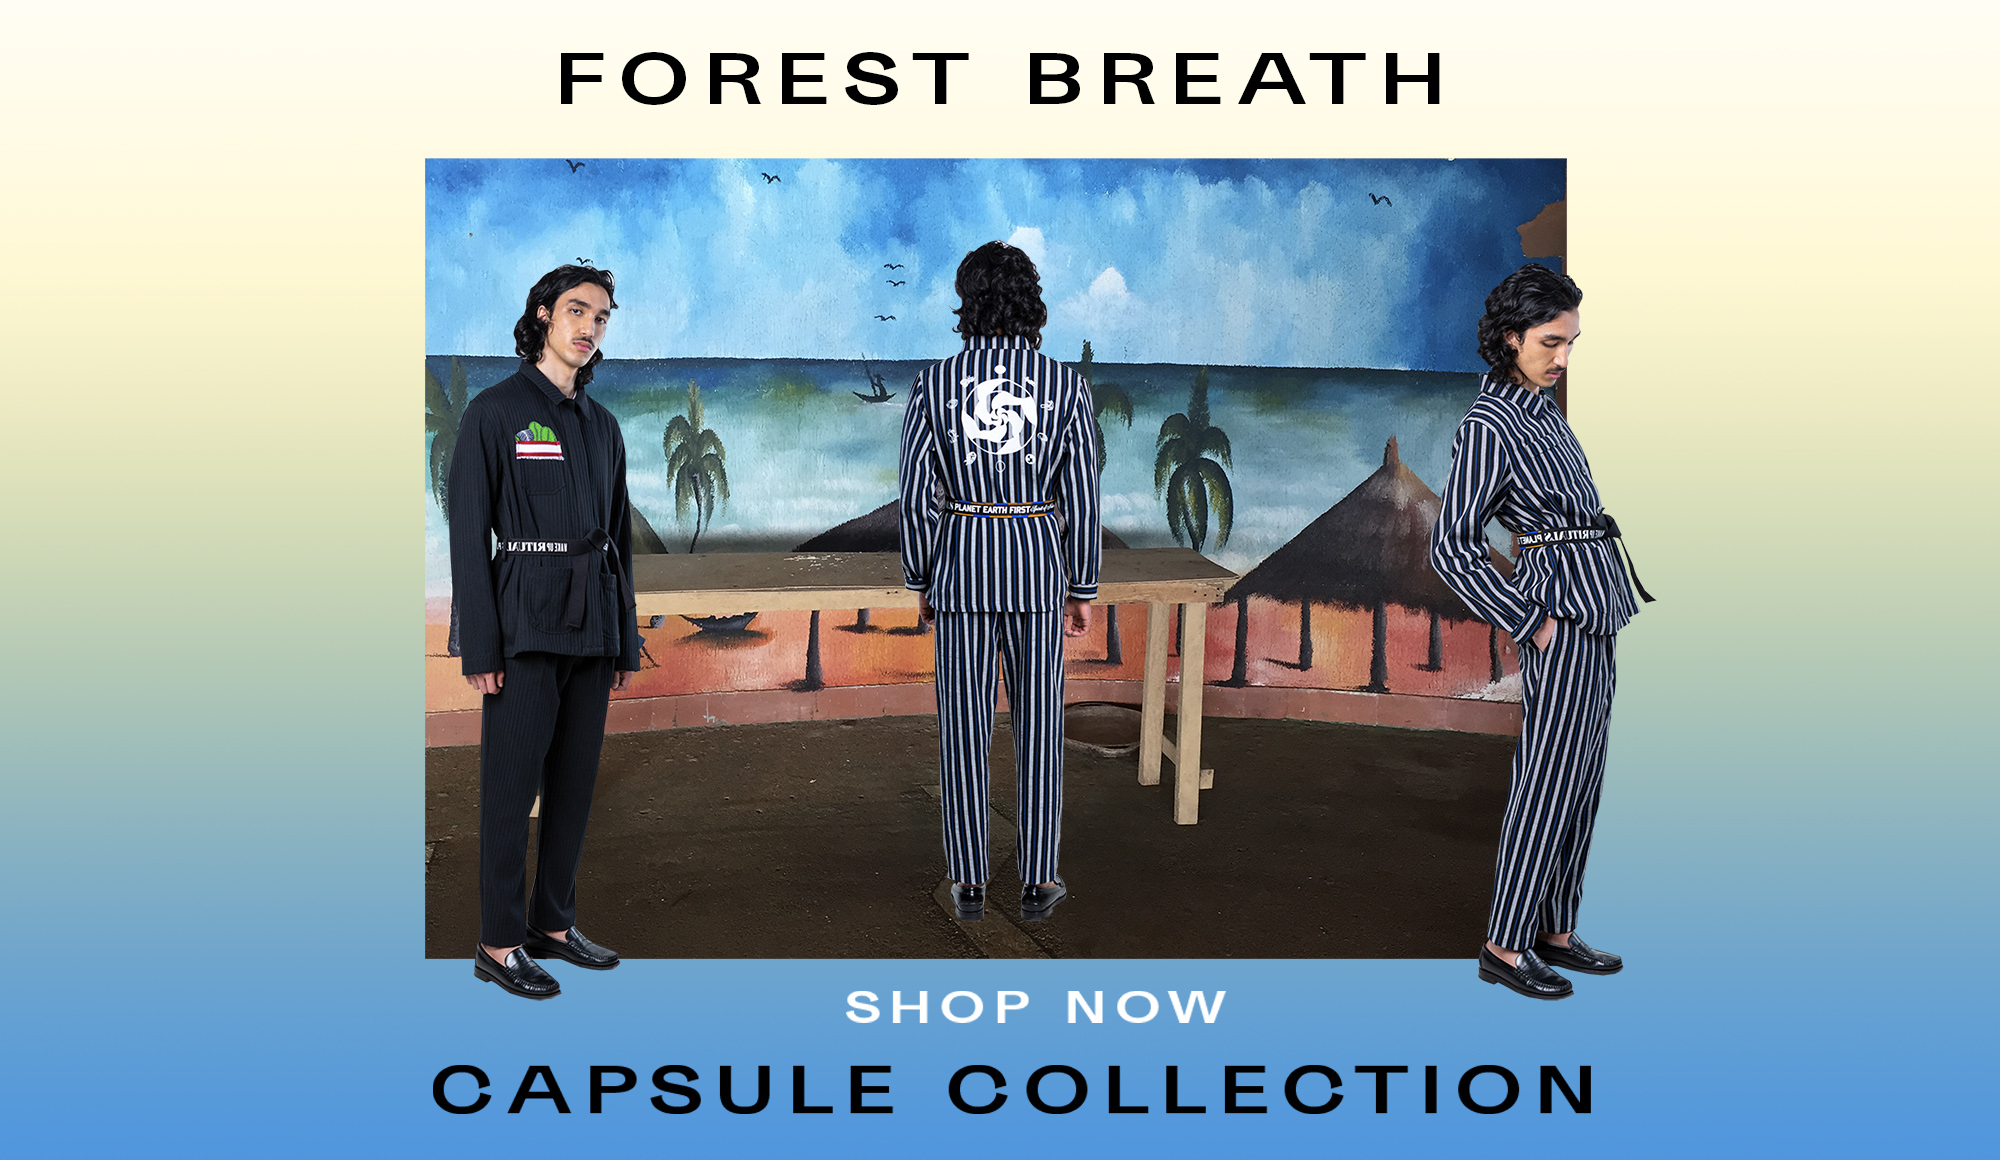 FOREST BREATH CAPSULE COLLECTION